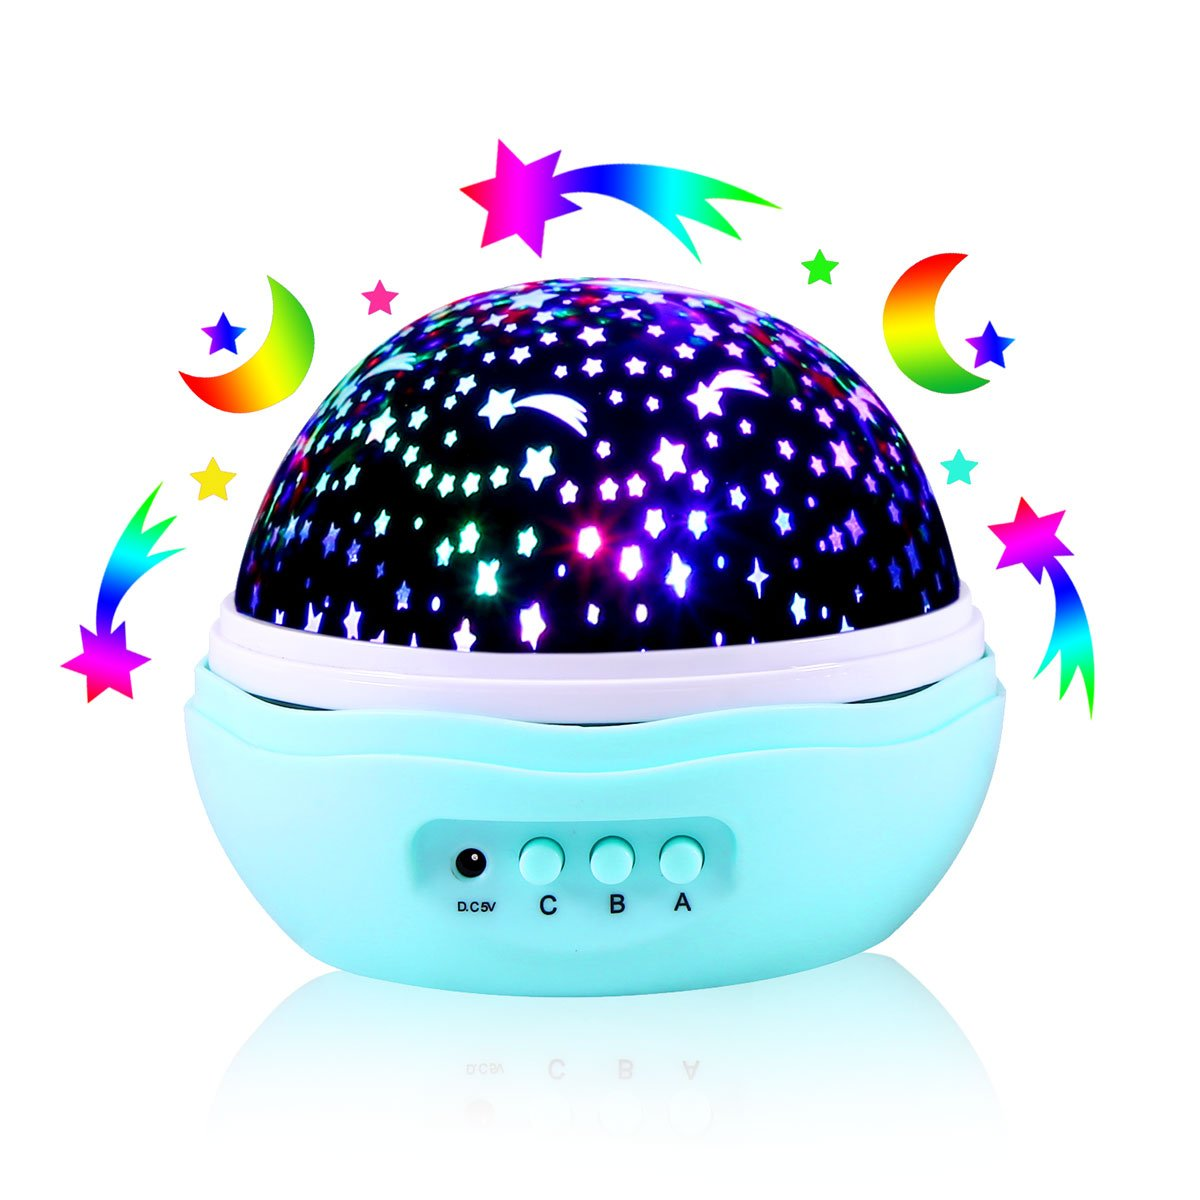 [Wall Adapter Included] Star Moon Sky Projector, 360 Degree Rotational LED Projector Night Light With 8 Light Modes - Perfect for Bedroom, Baby and Kid's Room B07B4DJS5F 13746 Star Moon Sky Star Moon Sky